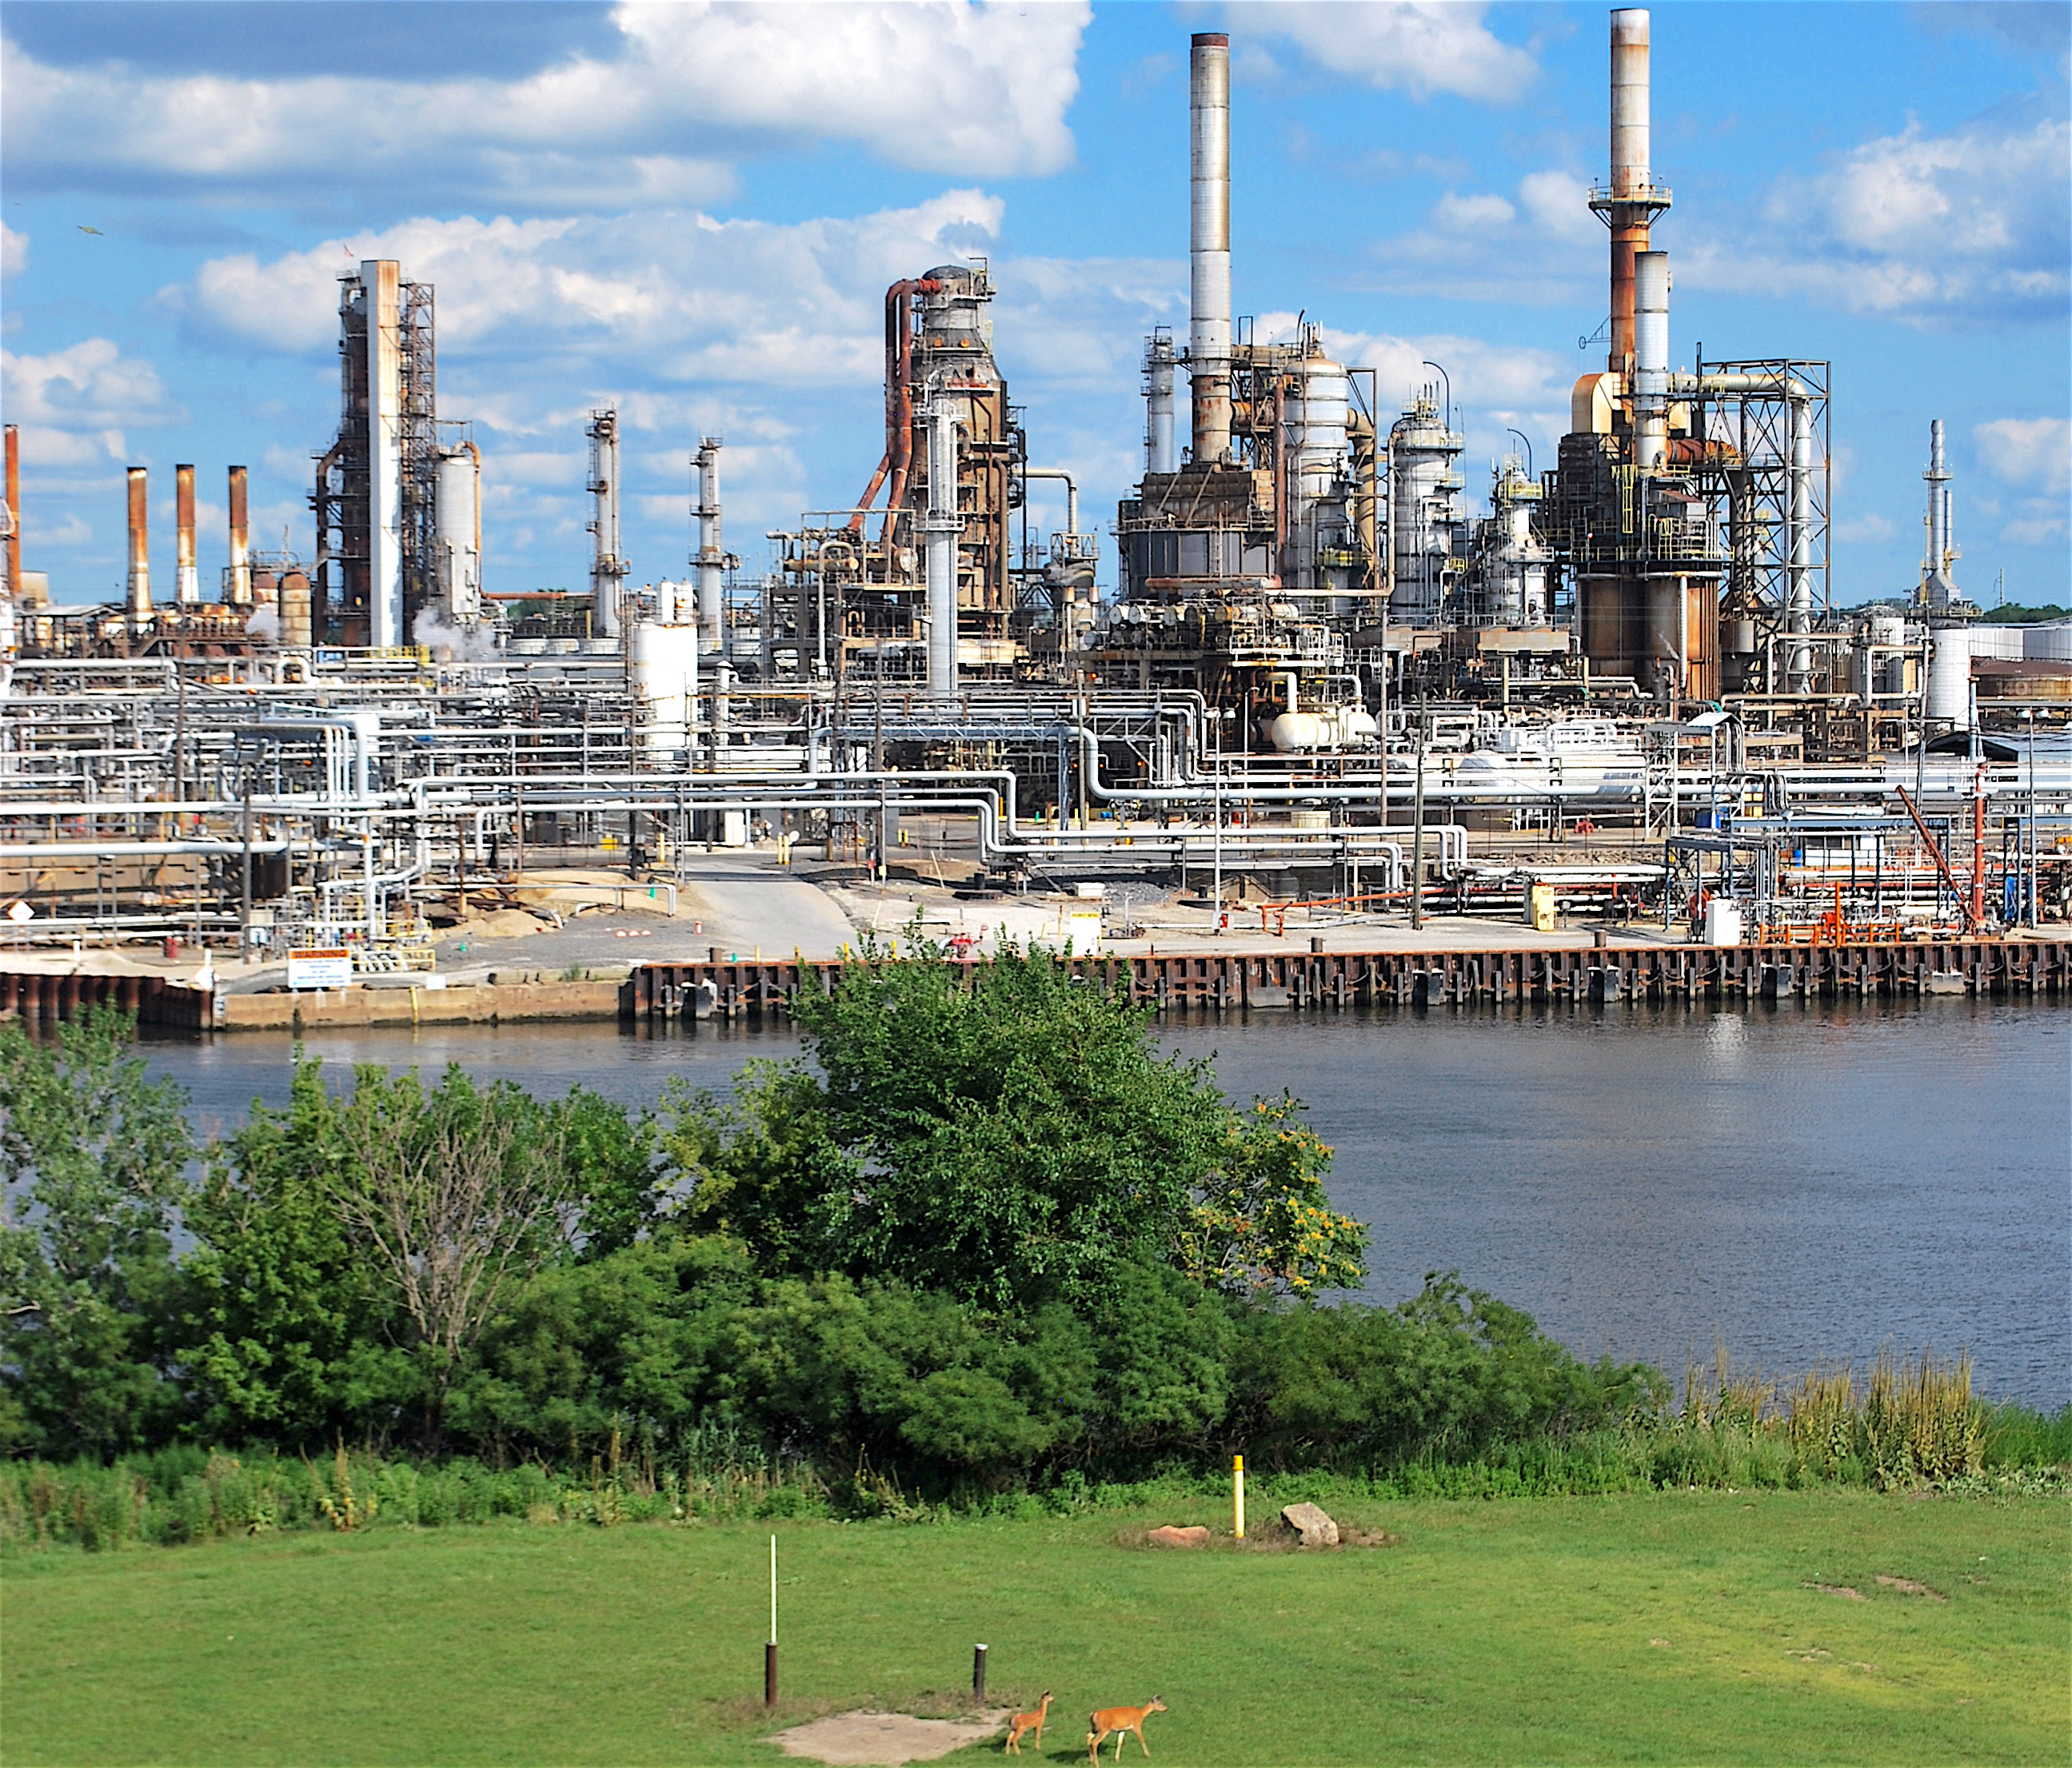 Photograph of Energy Solutions refinery